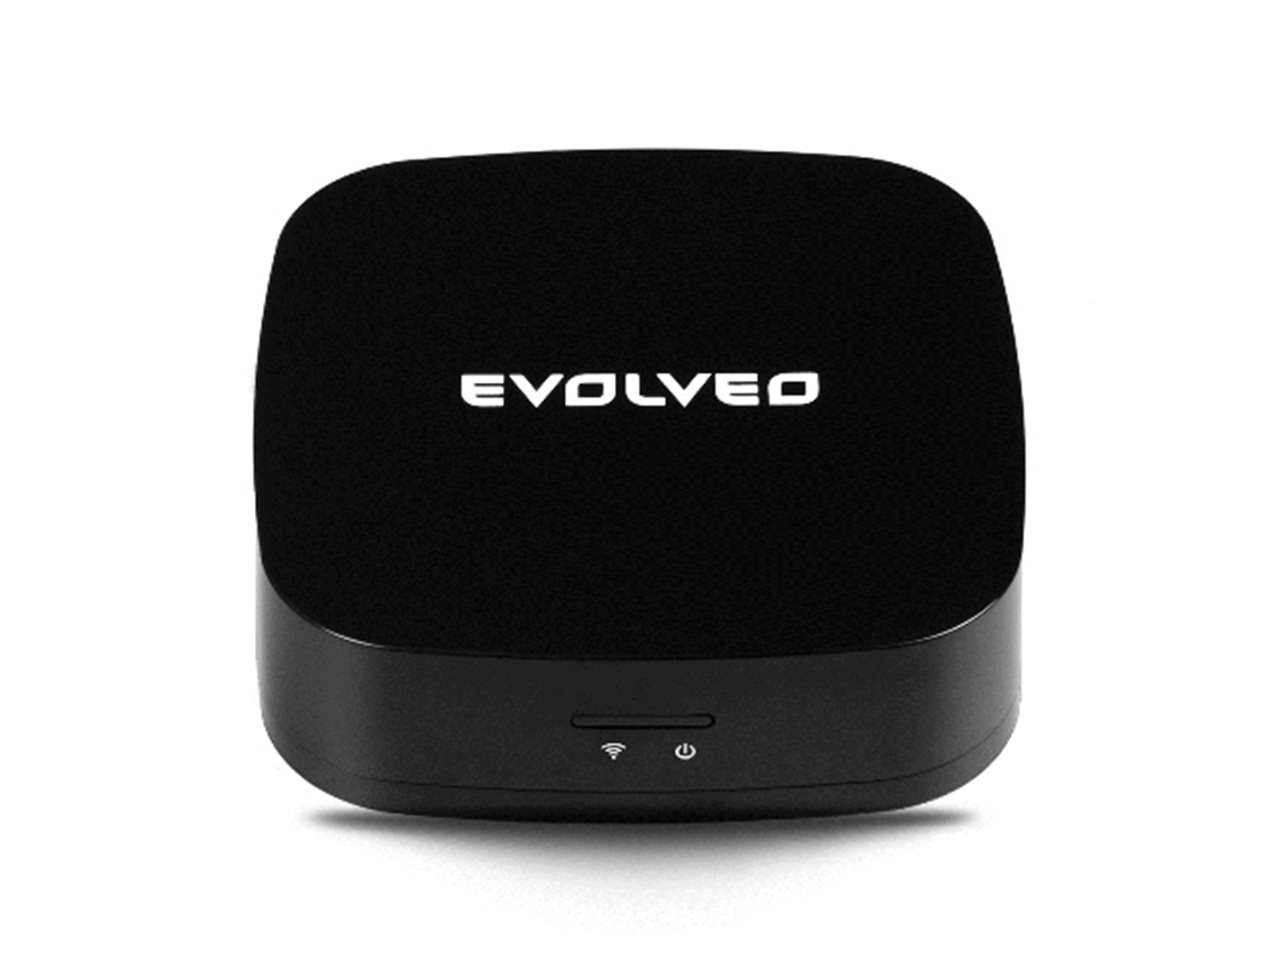 Evolveo Audio Streamer Wi-Fi